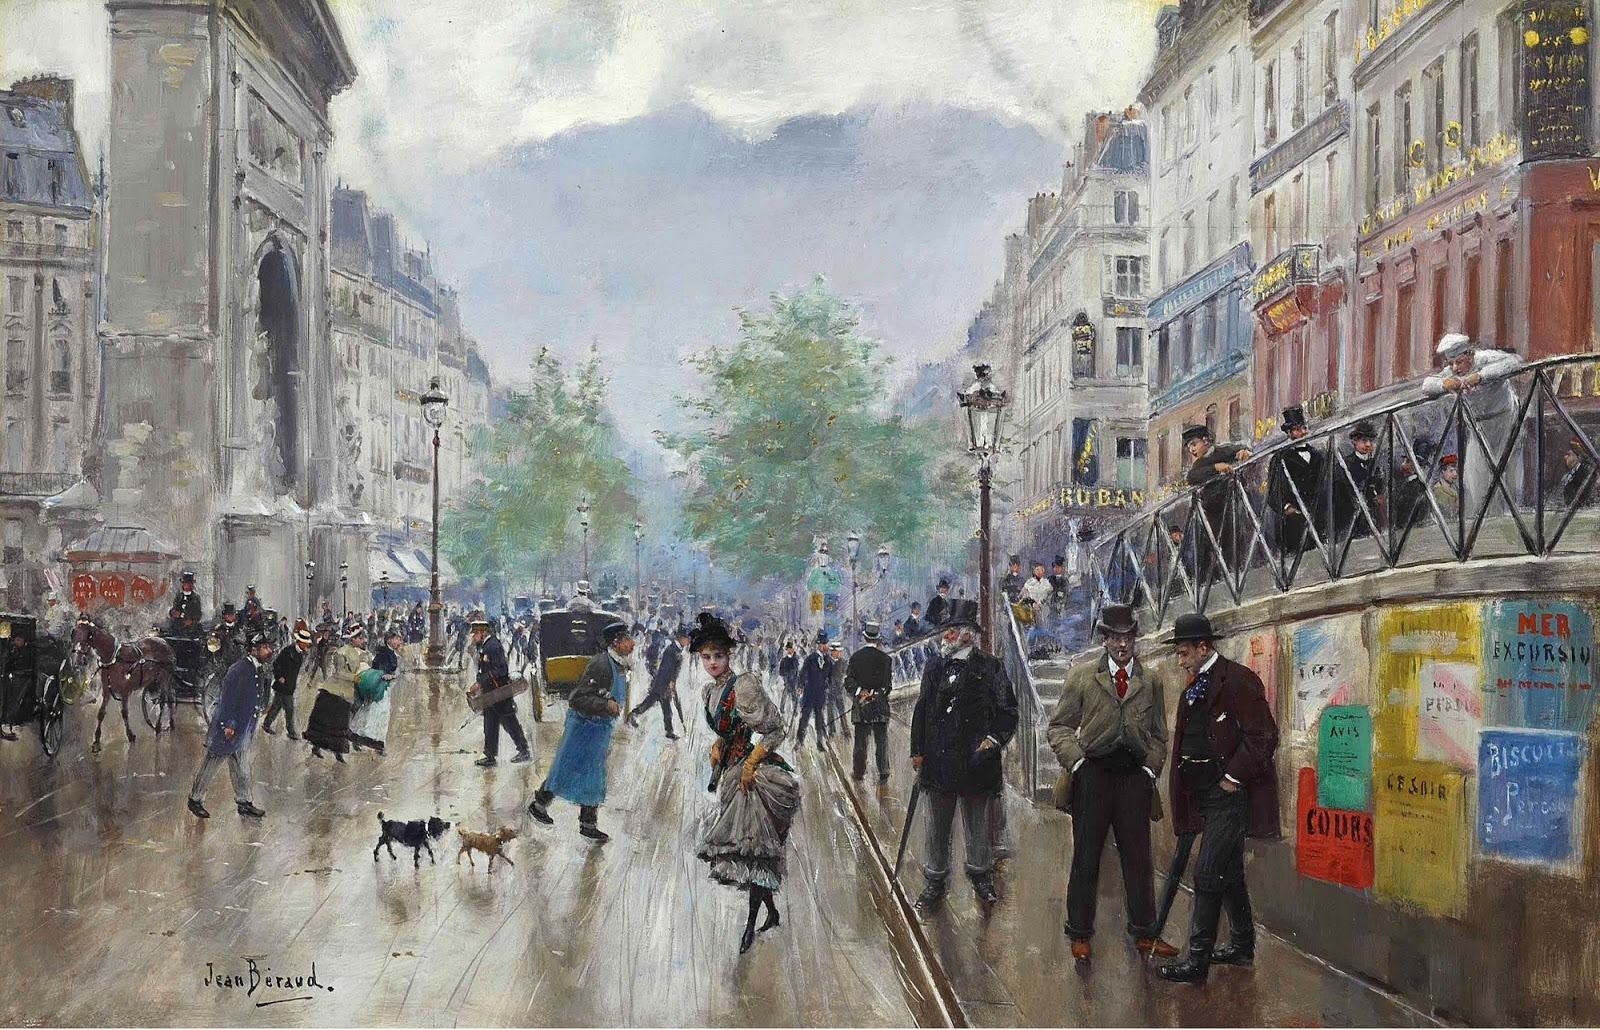 Jean    C Araud  Le  boulevard  Saint Denis  a  Paris